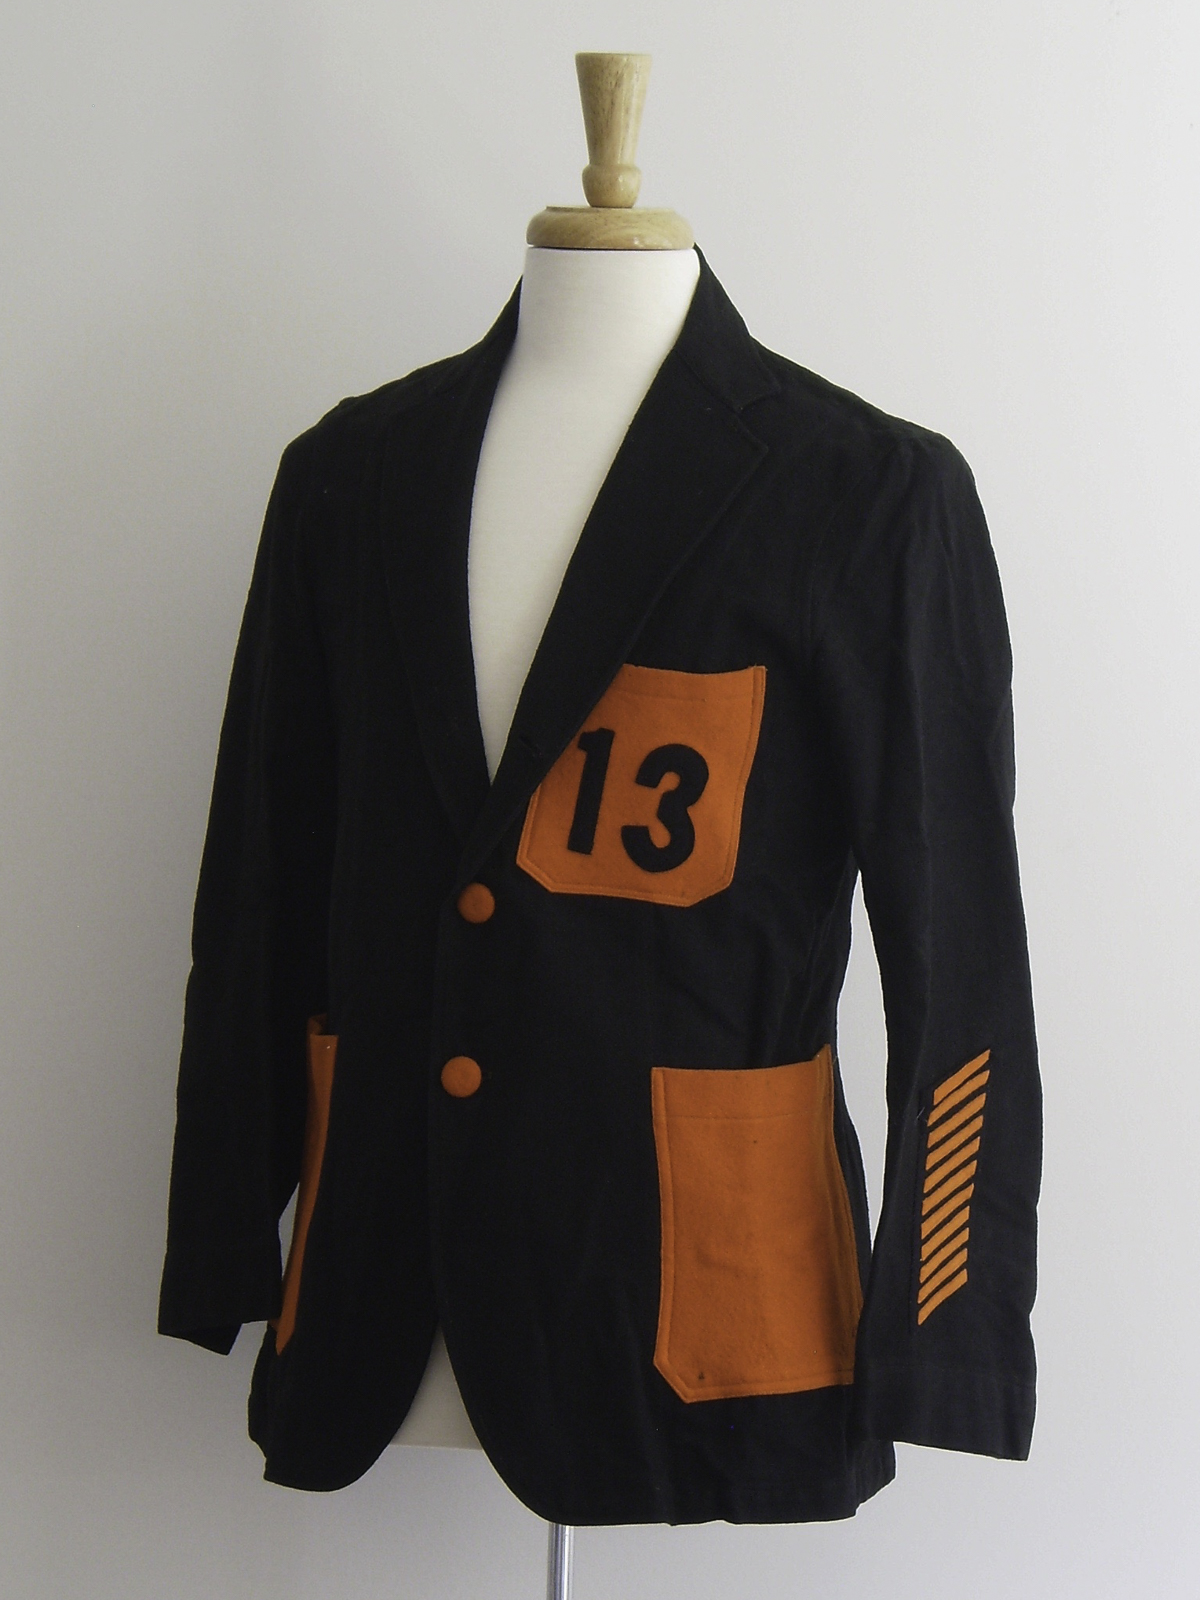 Reunion Jacket 1913 Variation 2 Front